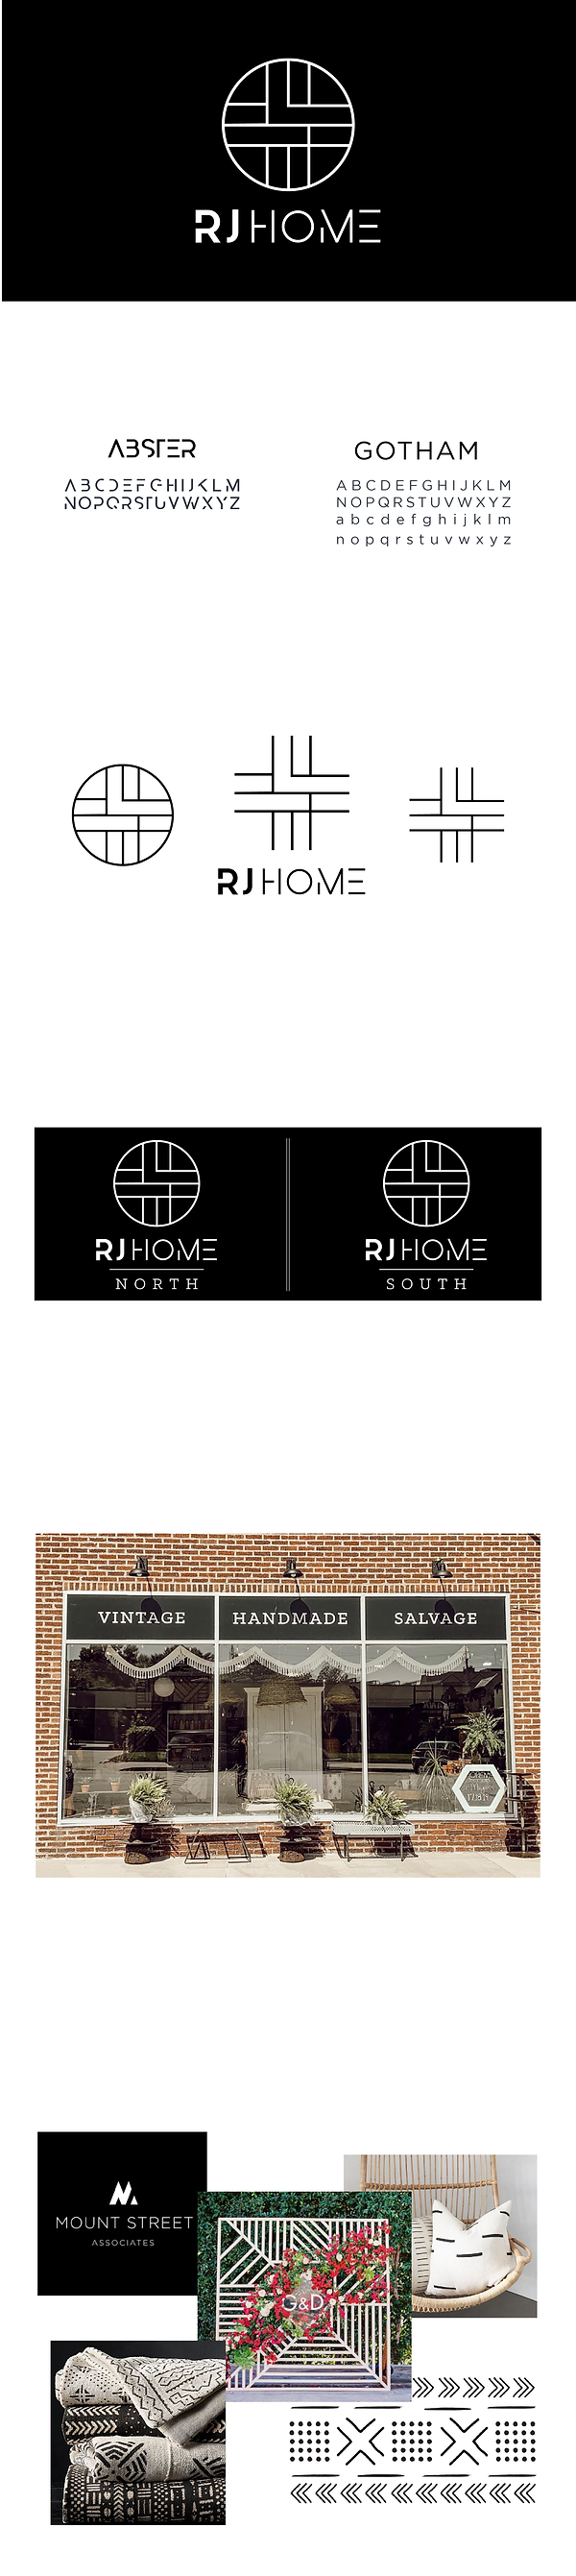 BDC_Website_FeaturedProject_RJHOME.png